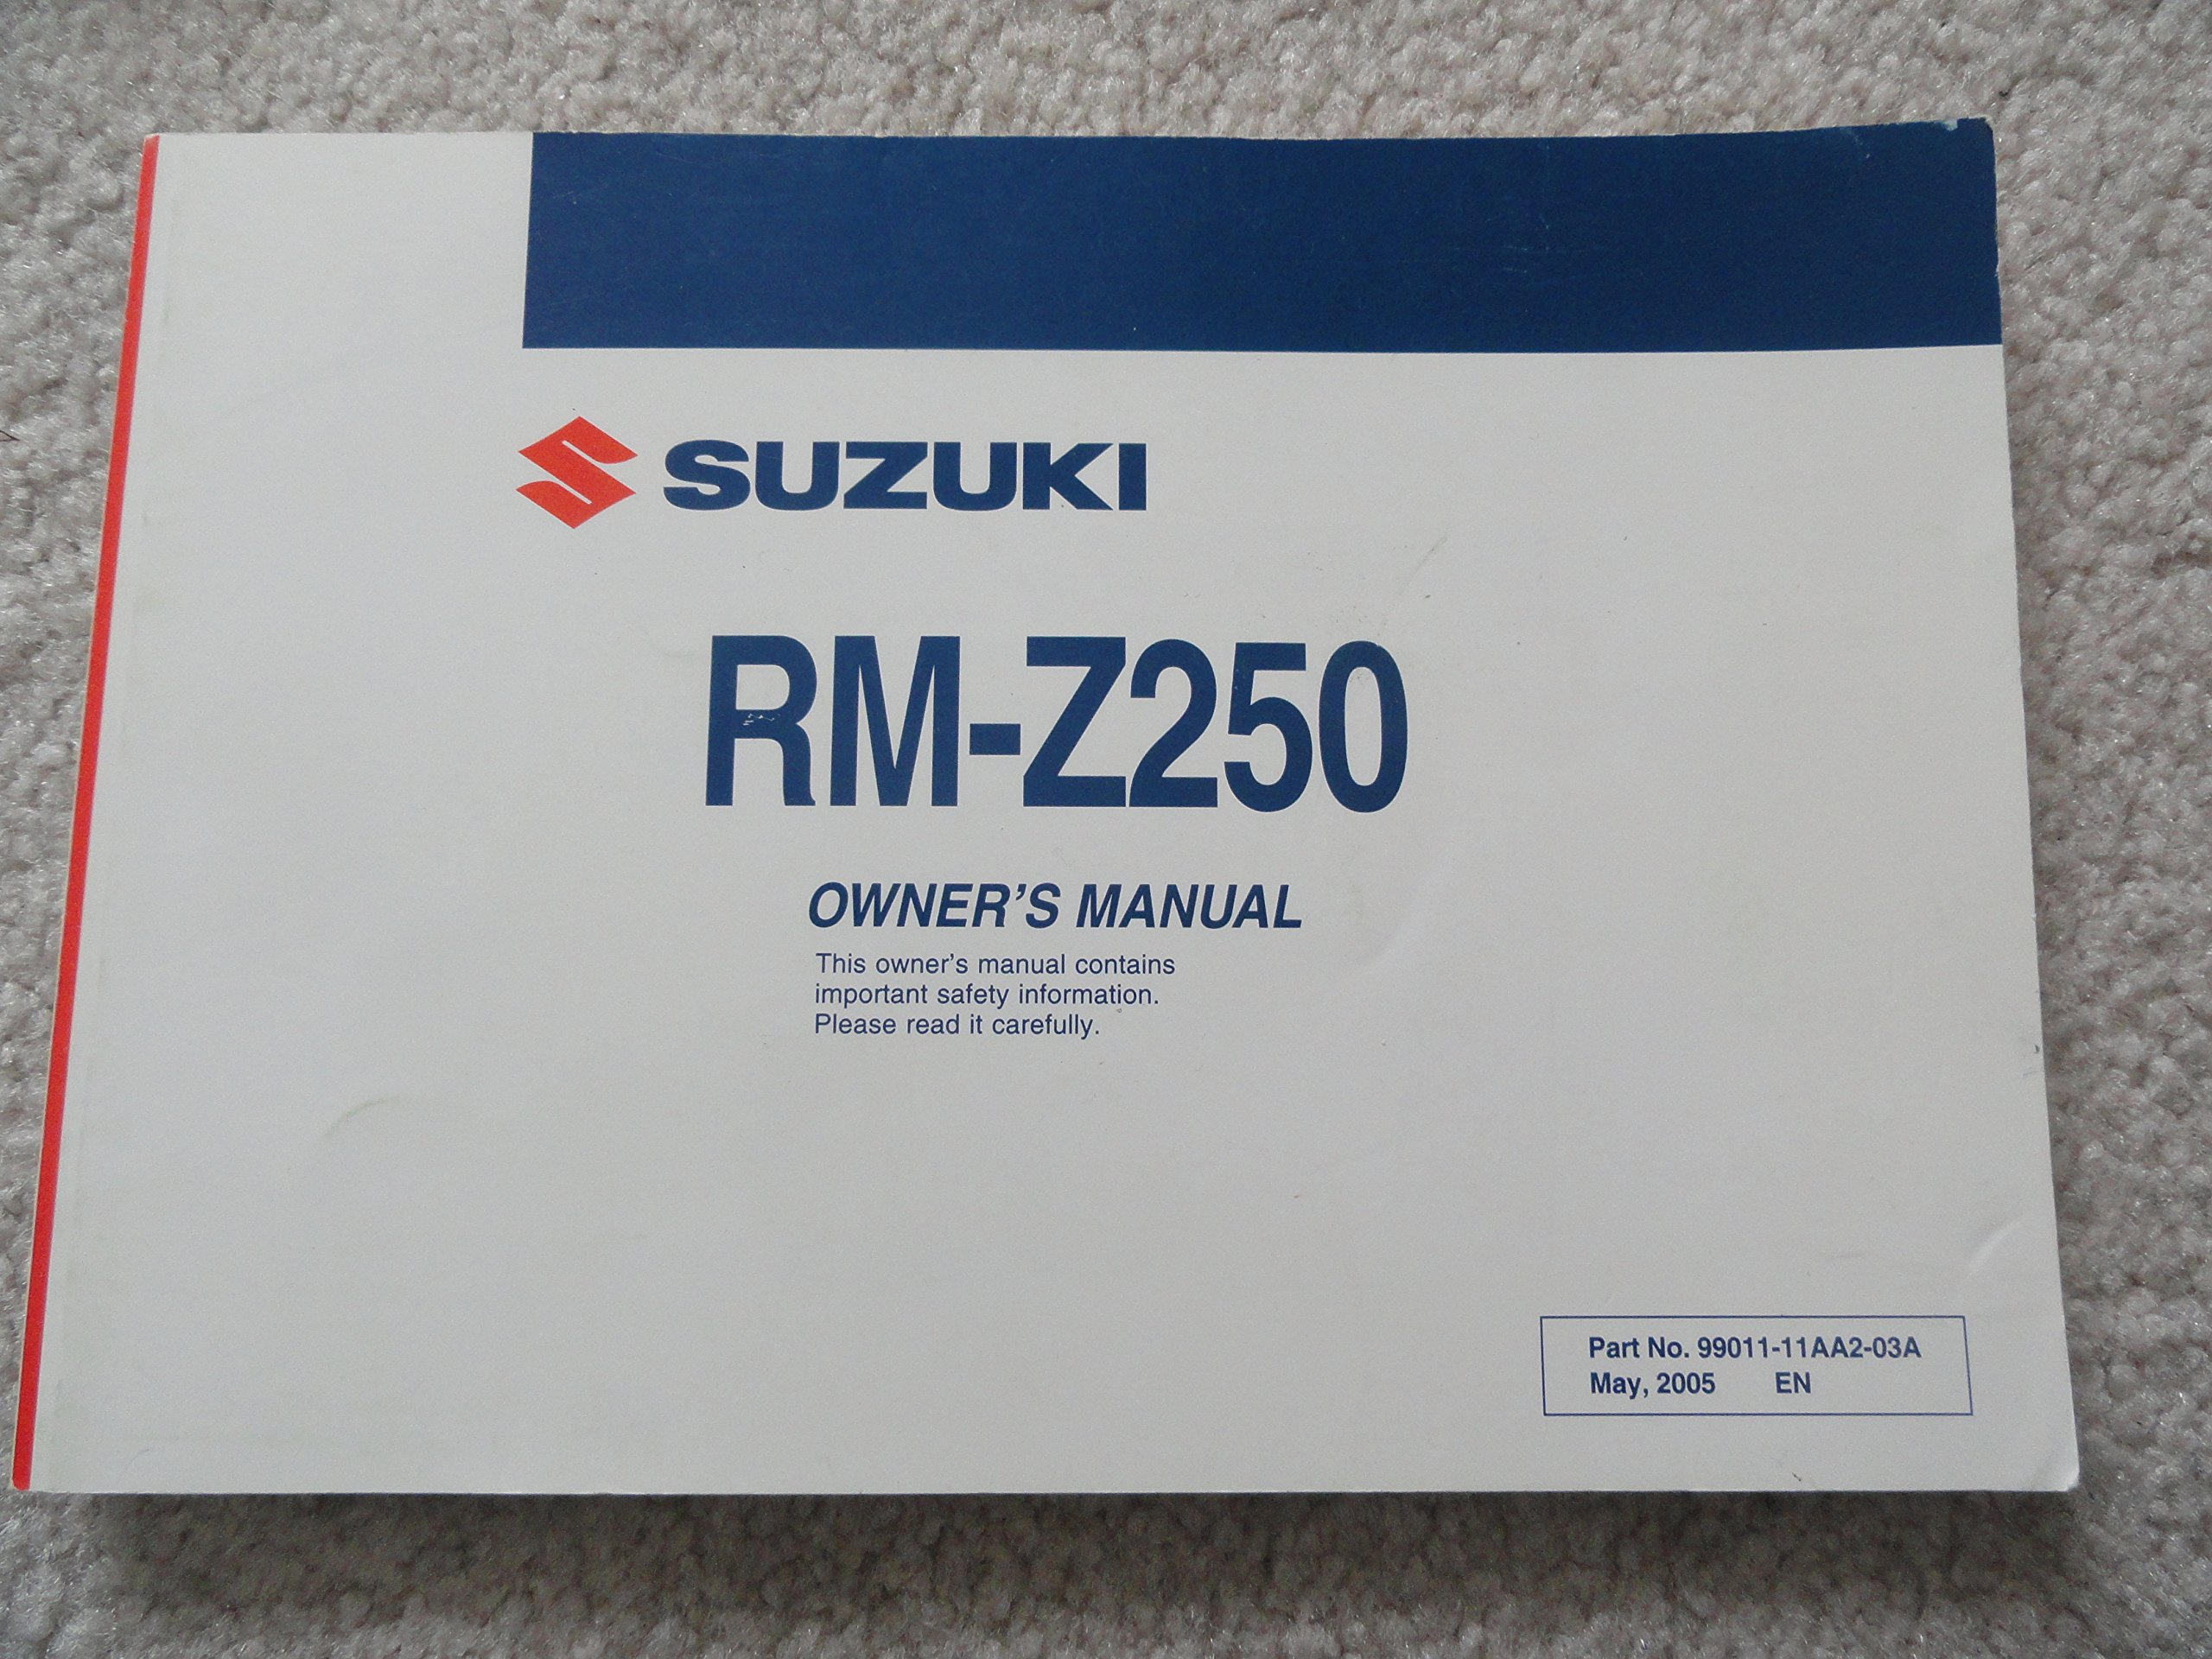 2005 2006 Suzuki RM-Z250 Motorcycle Owners Manual RM Z 250: Suzuki  Motorcycle: Amazon.com: Books